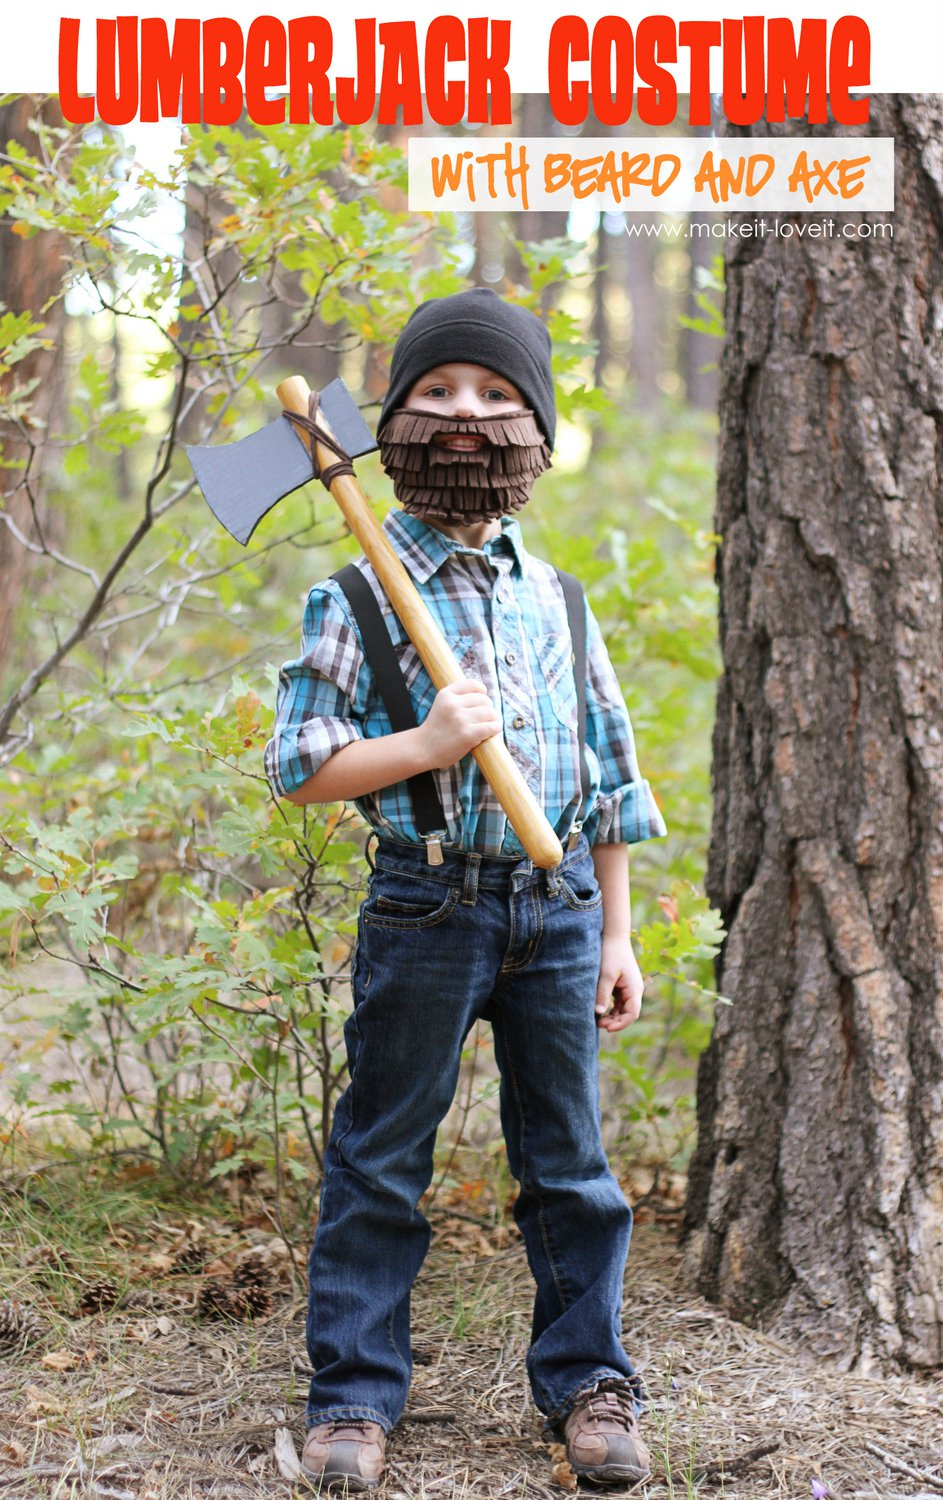 Lumberjack costume with beard